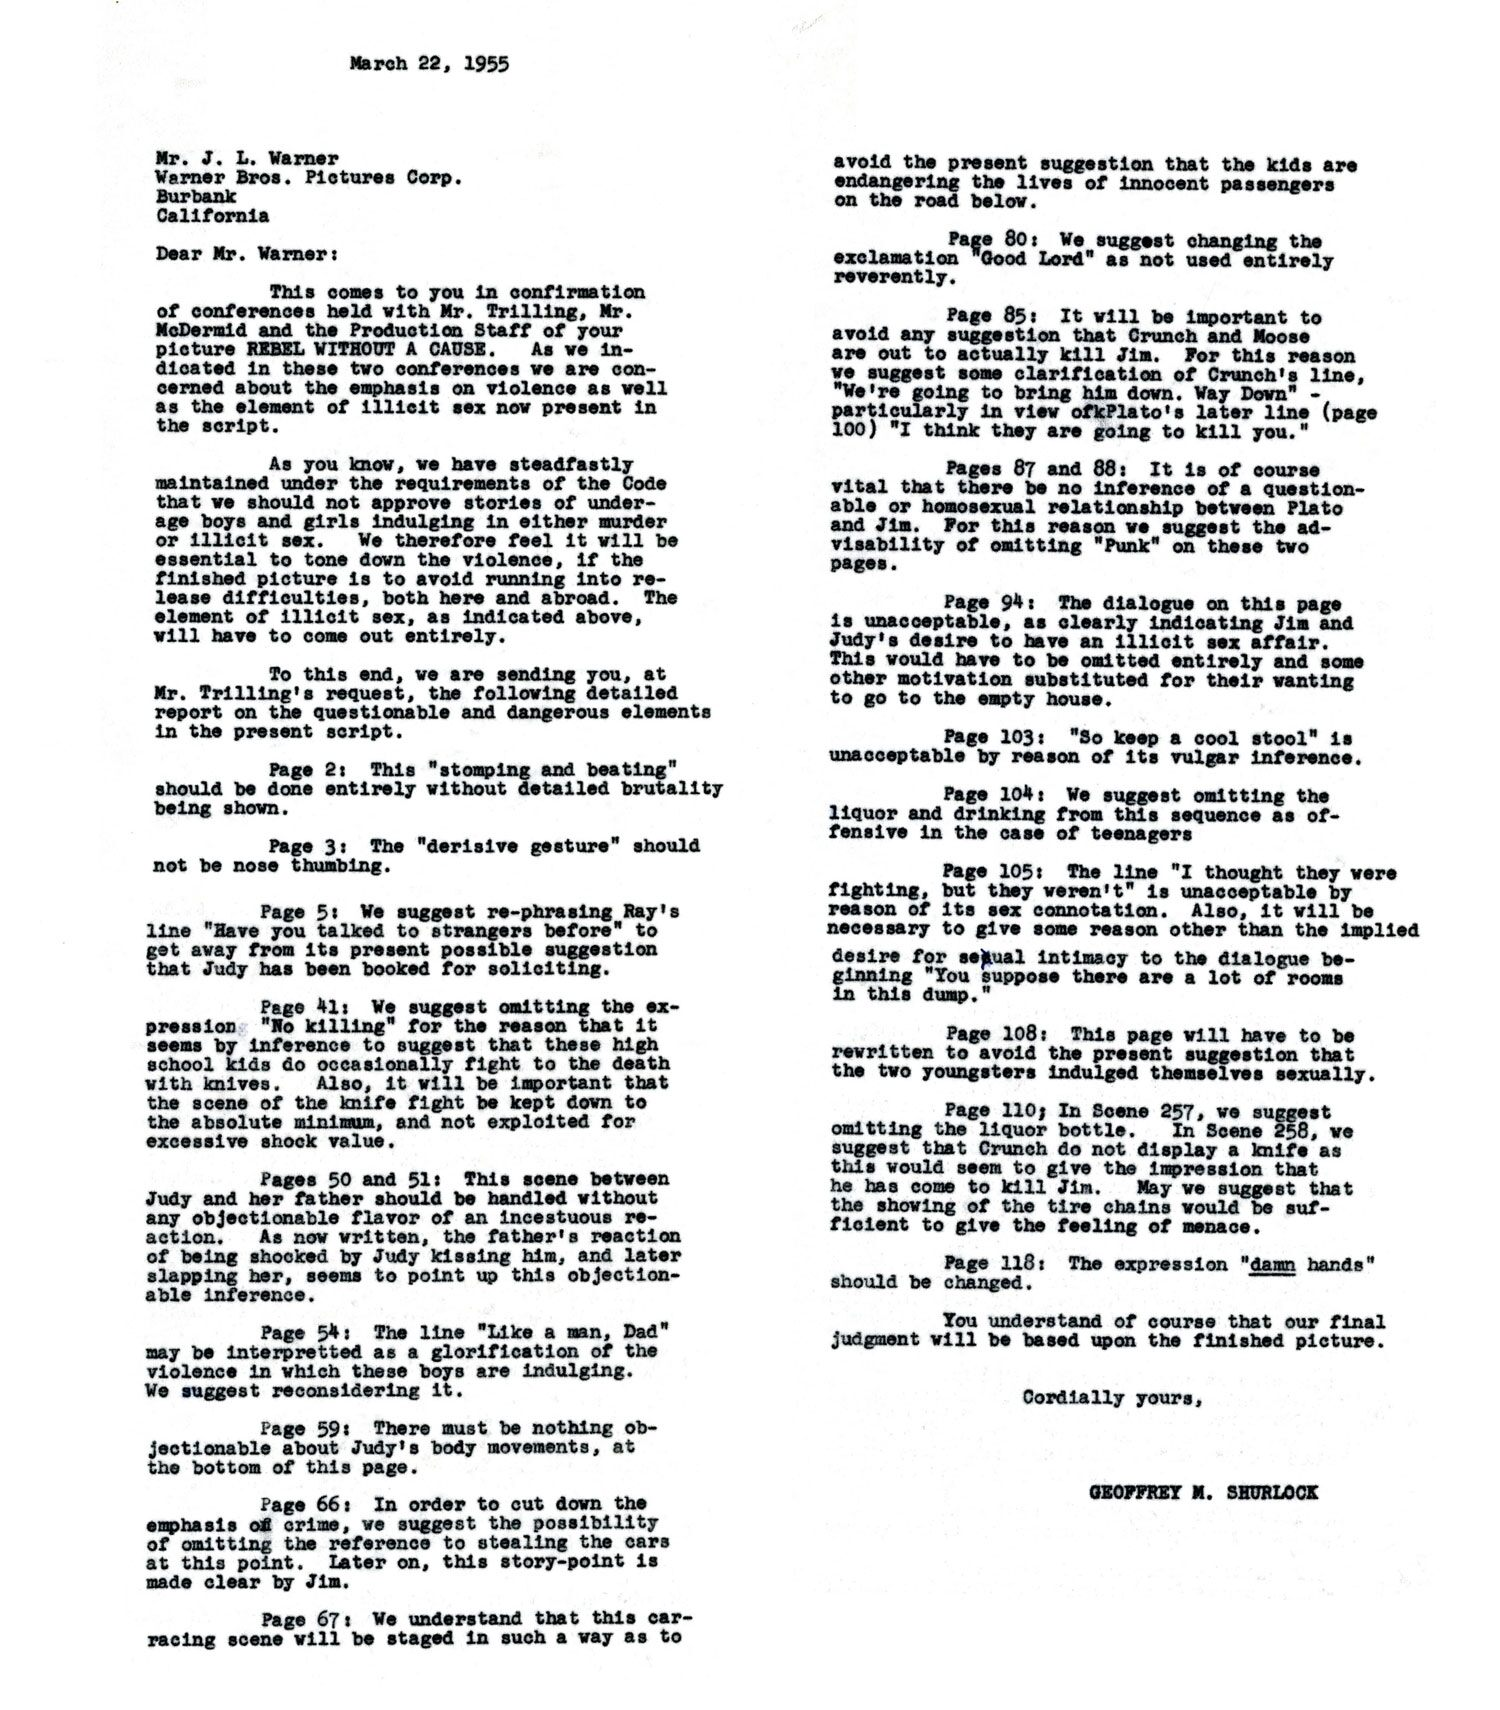 Both East of Eden and Rebel without a Cause went through revisions before being approved by the Production Code. As seen in this letter, those changes could be demanded throughout the entire film.